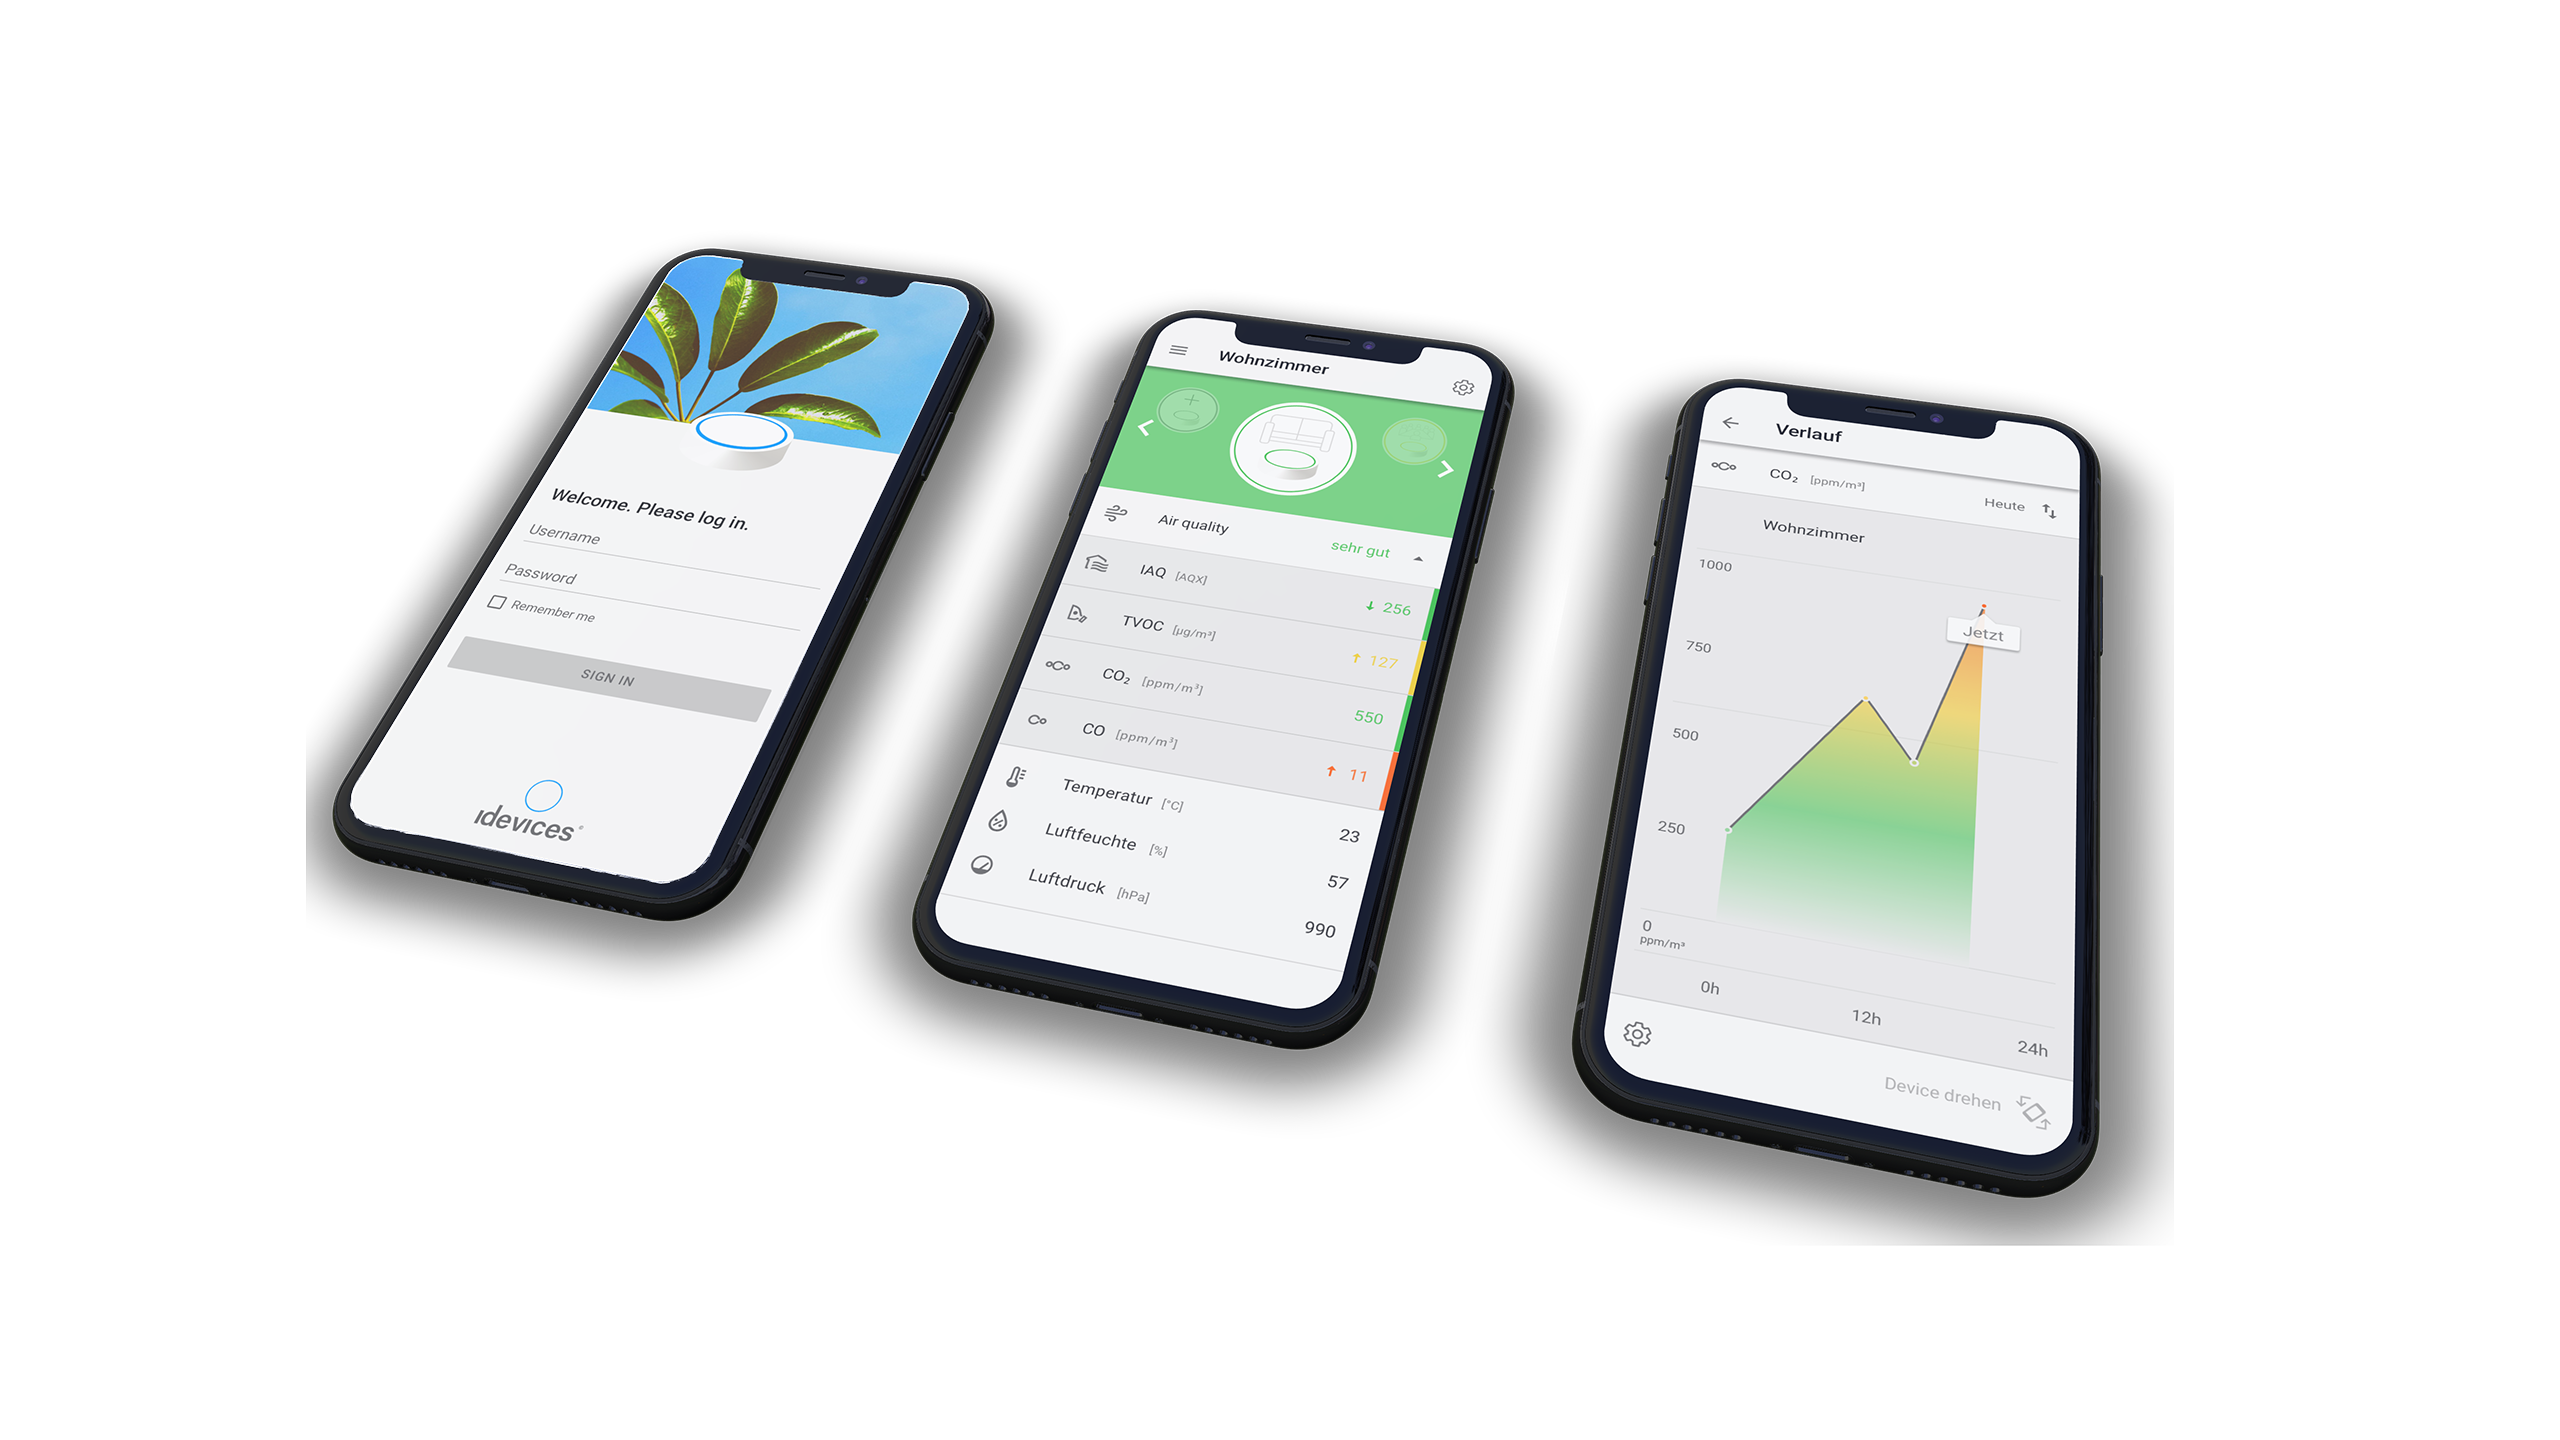 UI Design for iDevices monitoring app